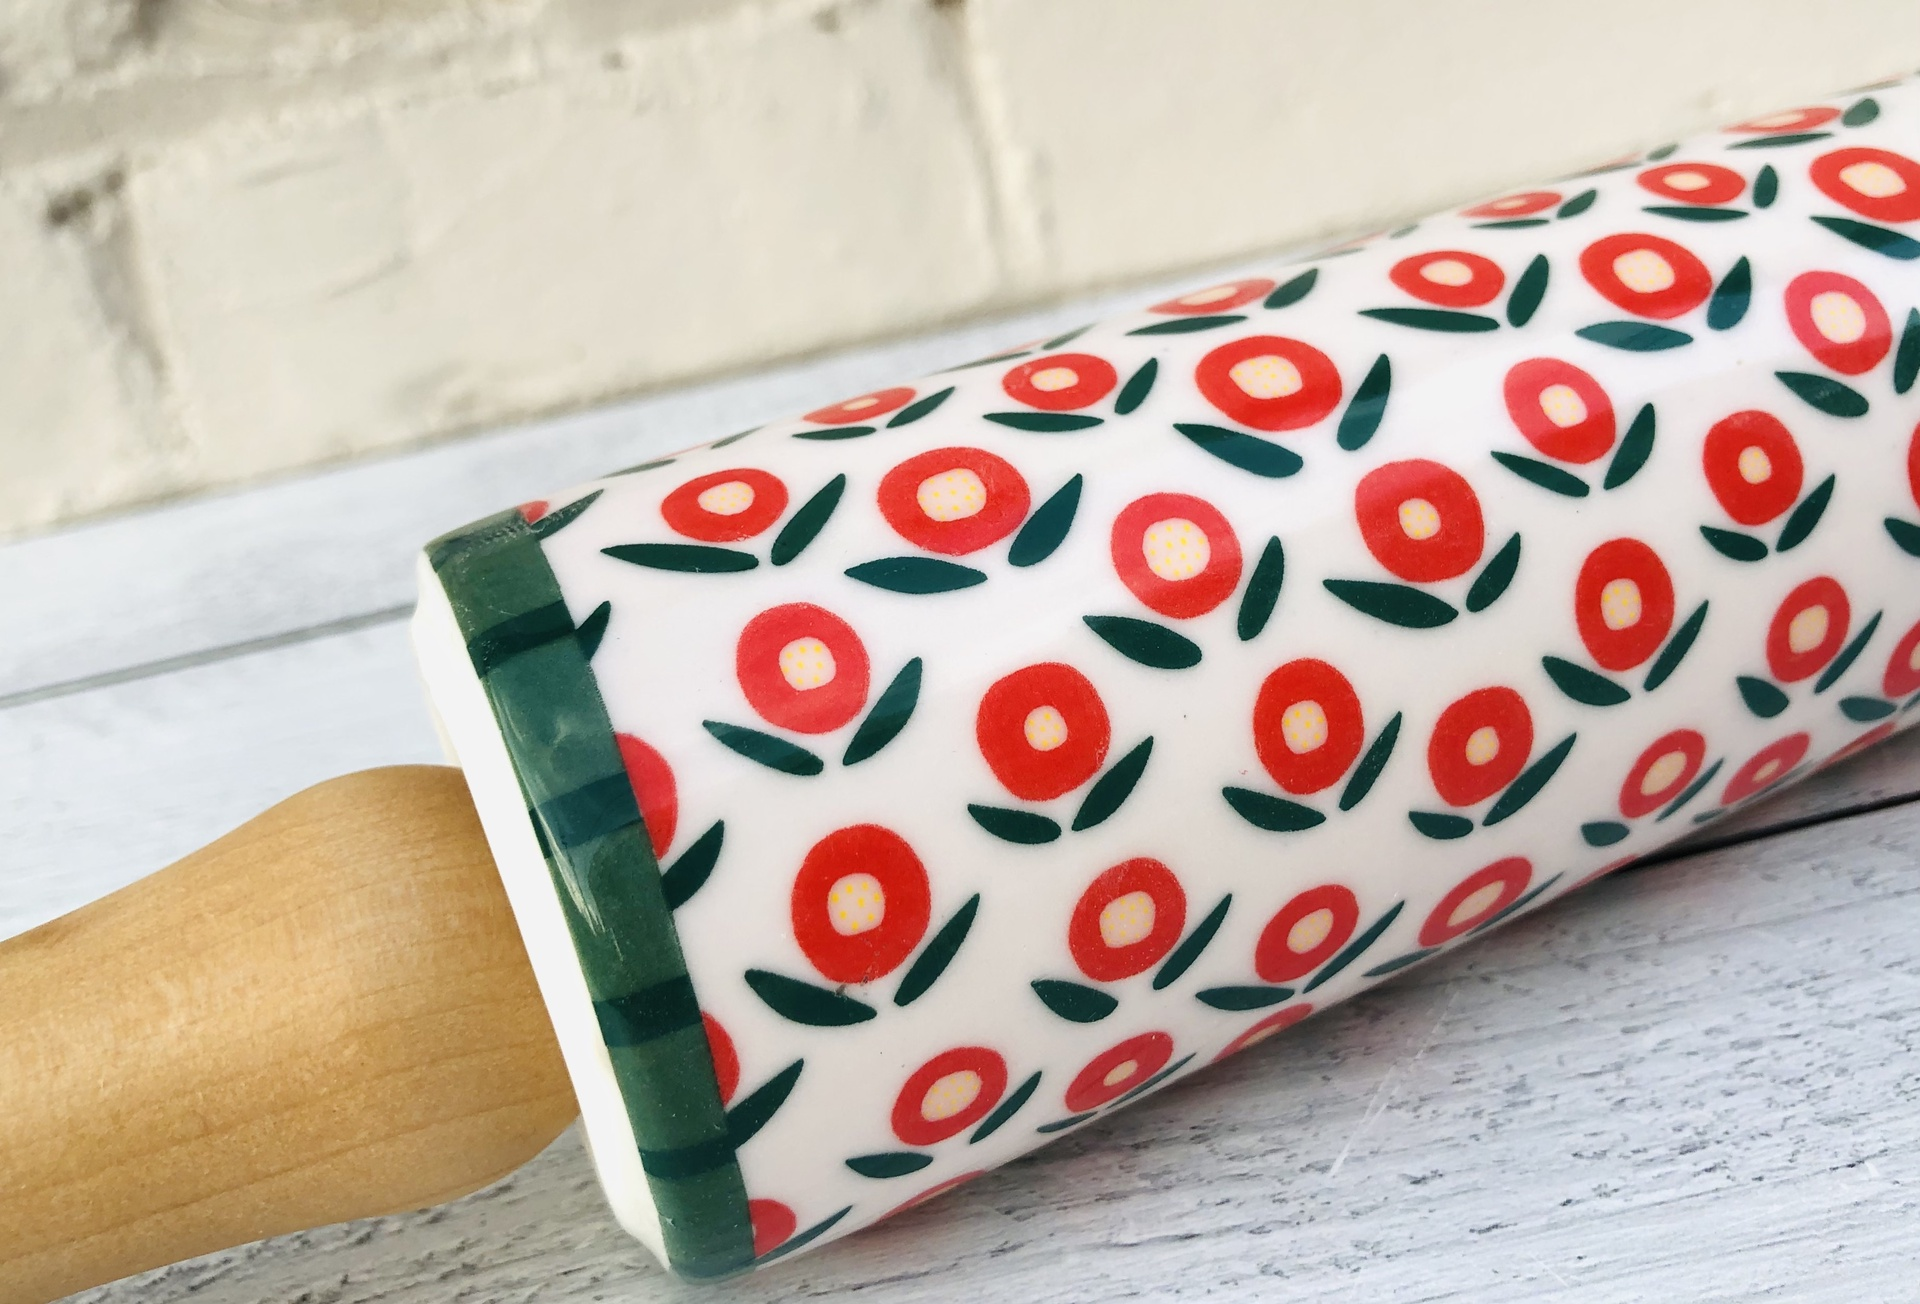 Stoneware Rolling Pin with Flowers